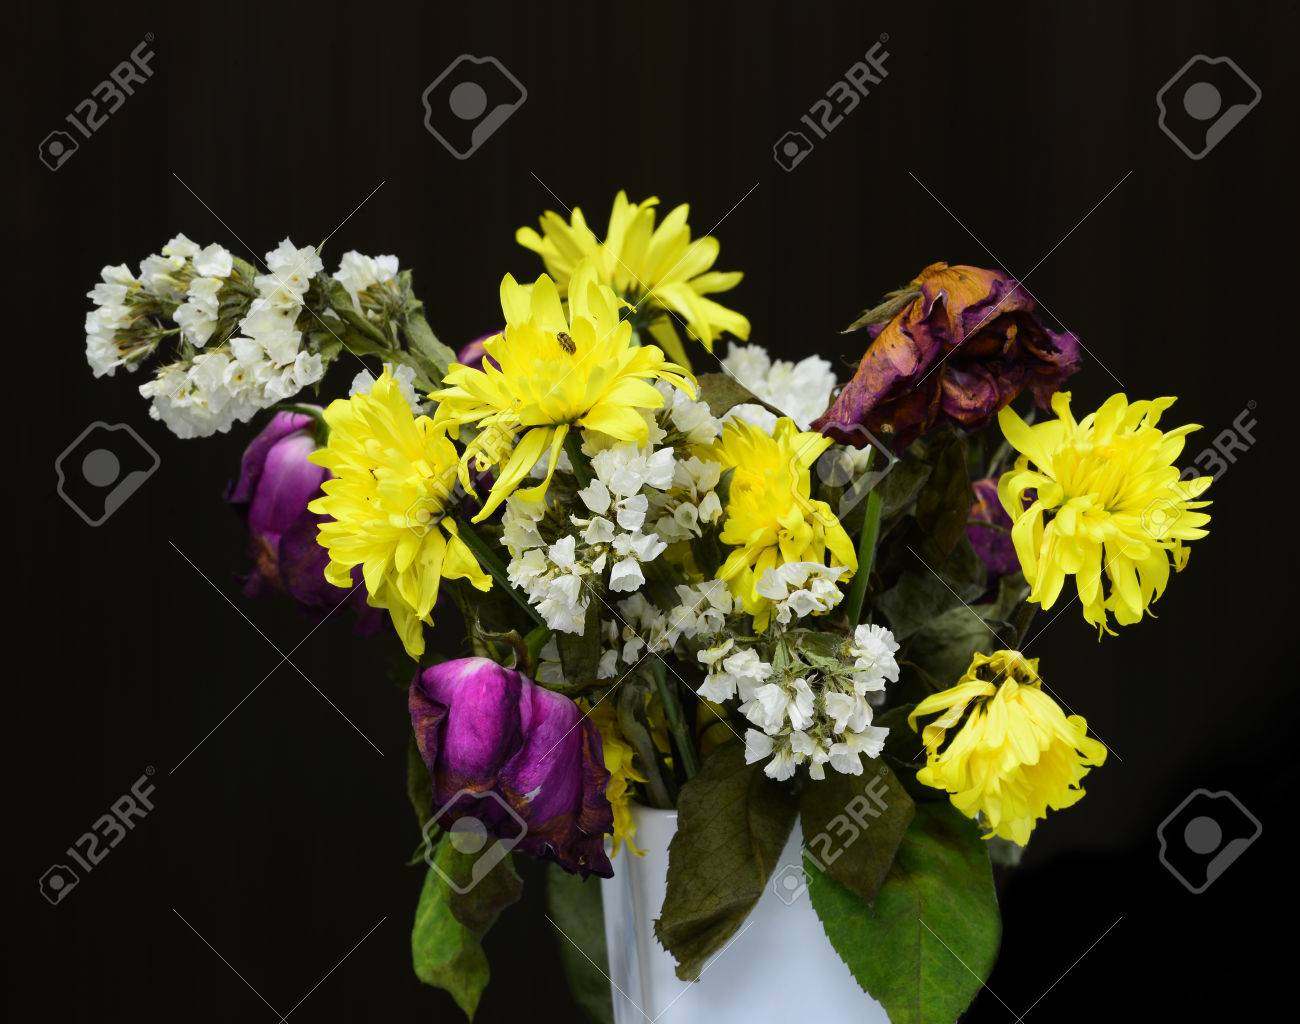 Dead Flowers In A Vase Isolated On Black Background Stock Photo